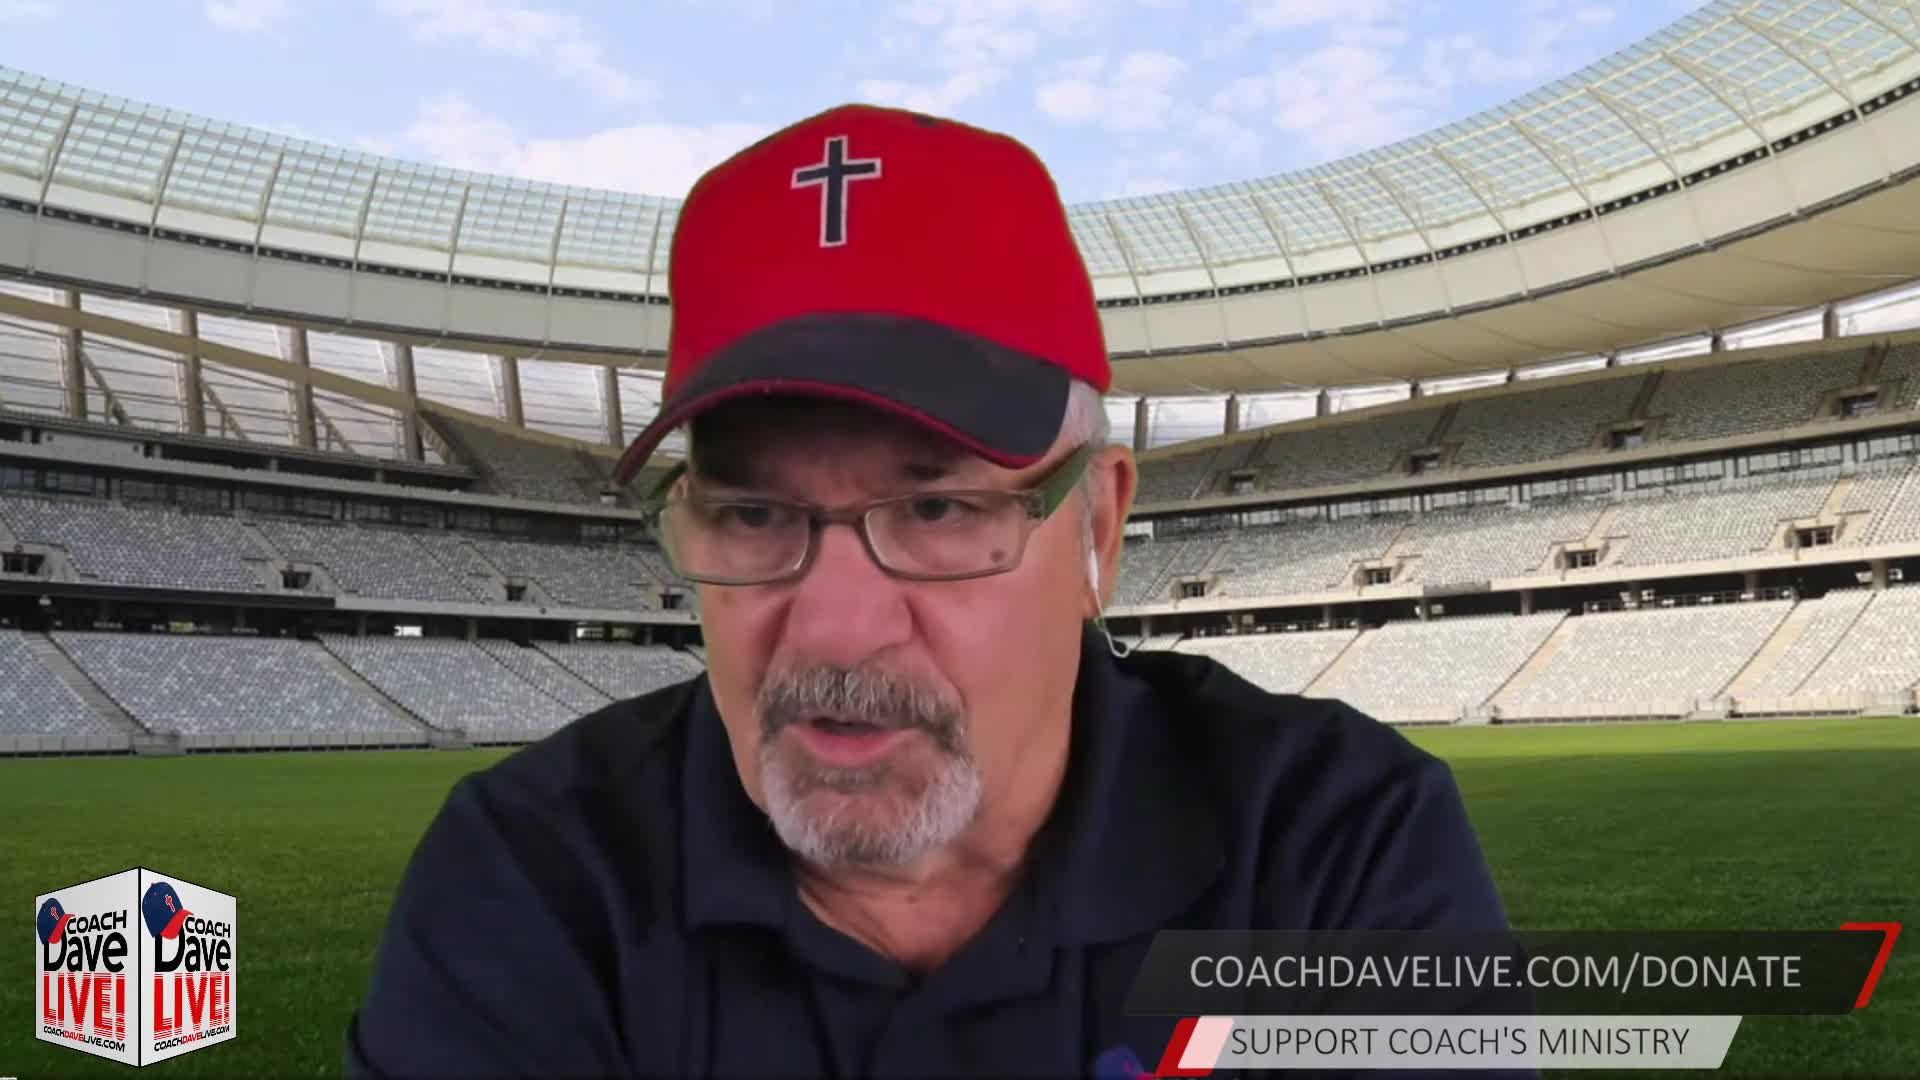 Coach Dave LIVE | 11-30-2020 | With All Boldness